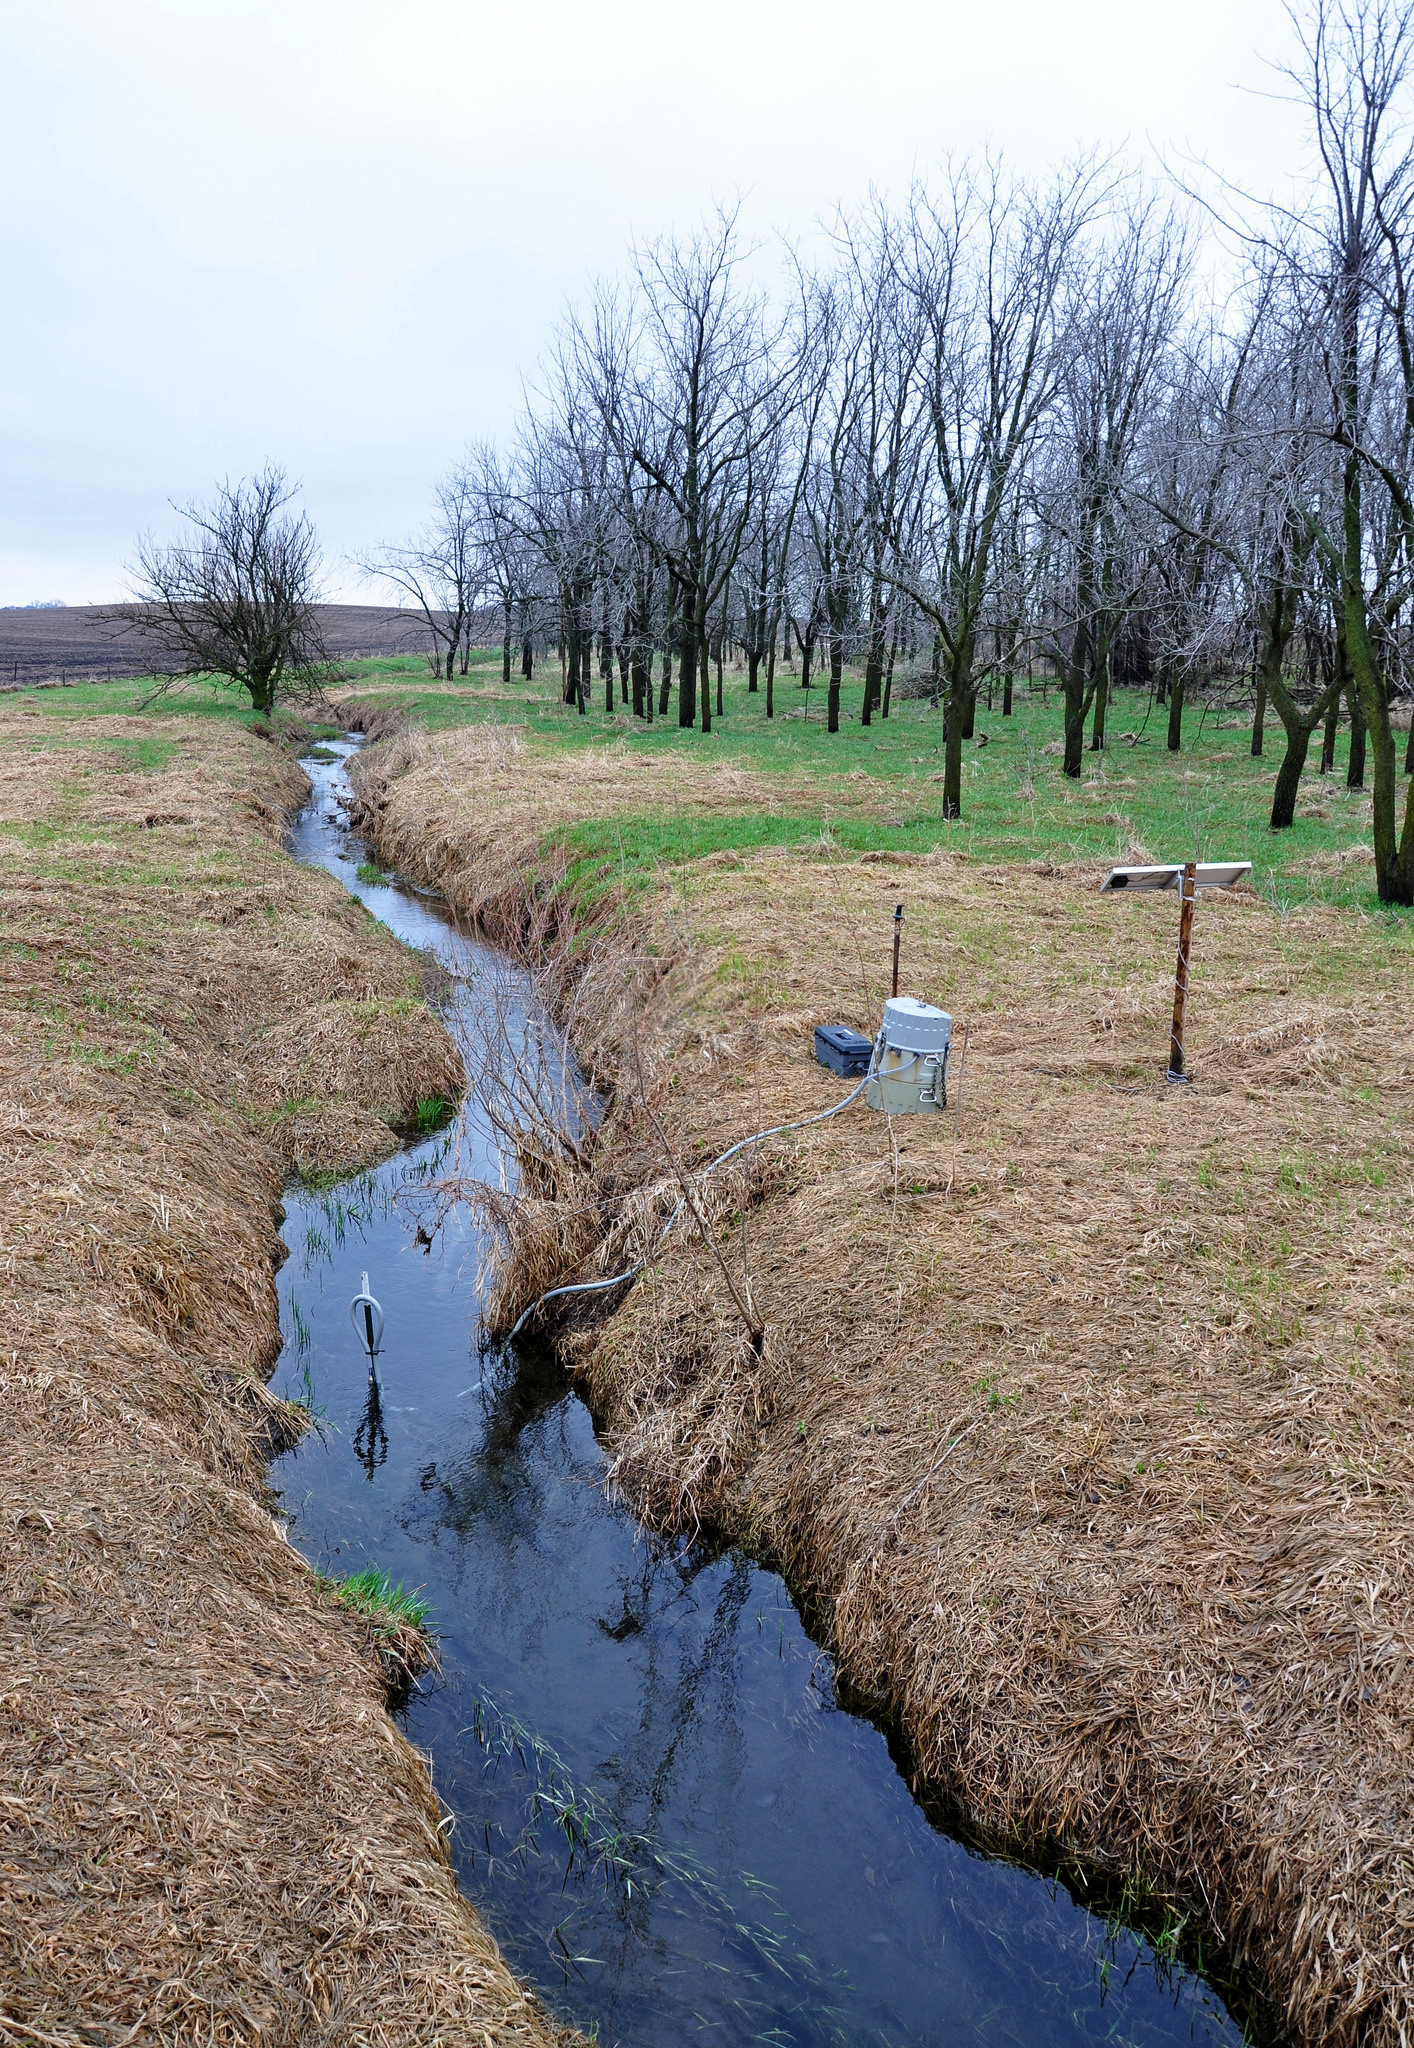 The Iowa Department of Natural Resources uses an automated water quality monitoring system along a stream in Sac County, Iowa.